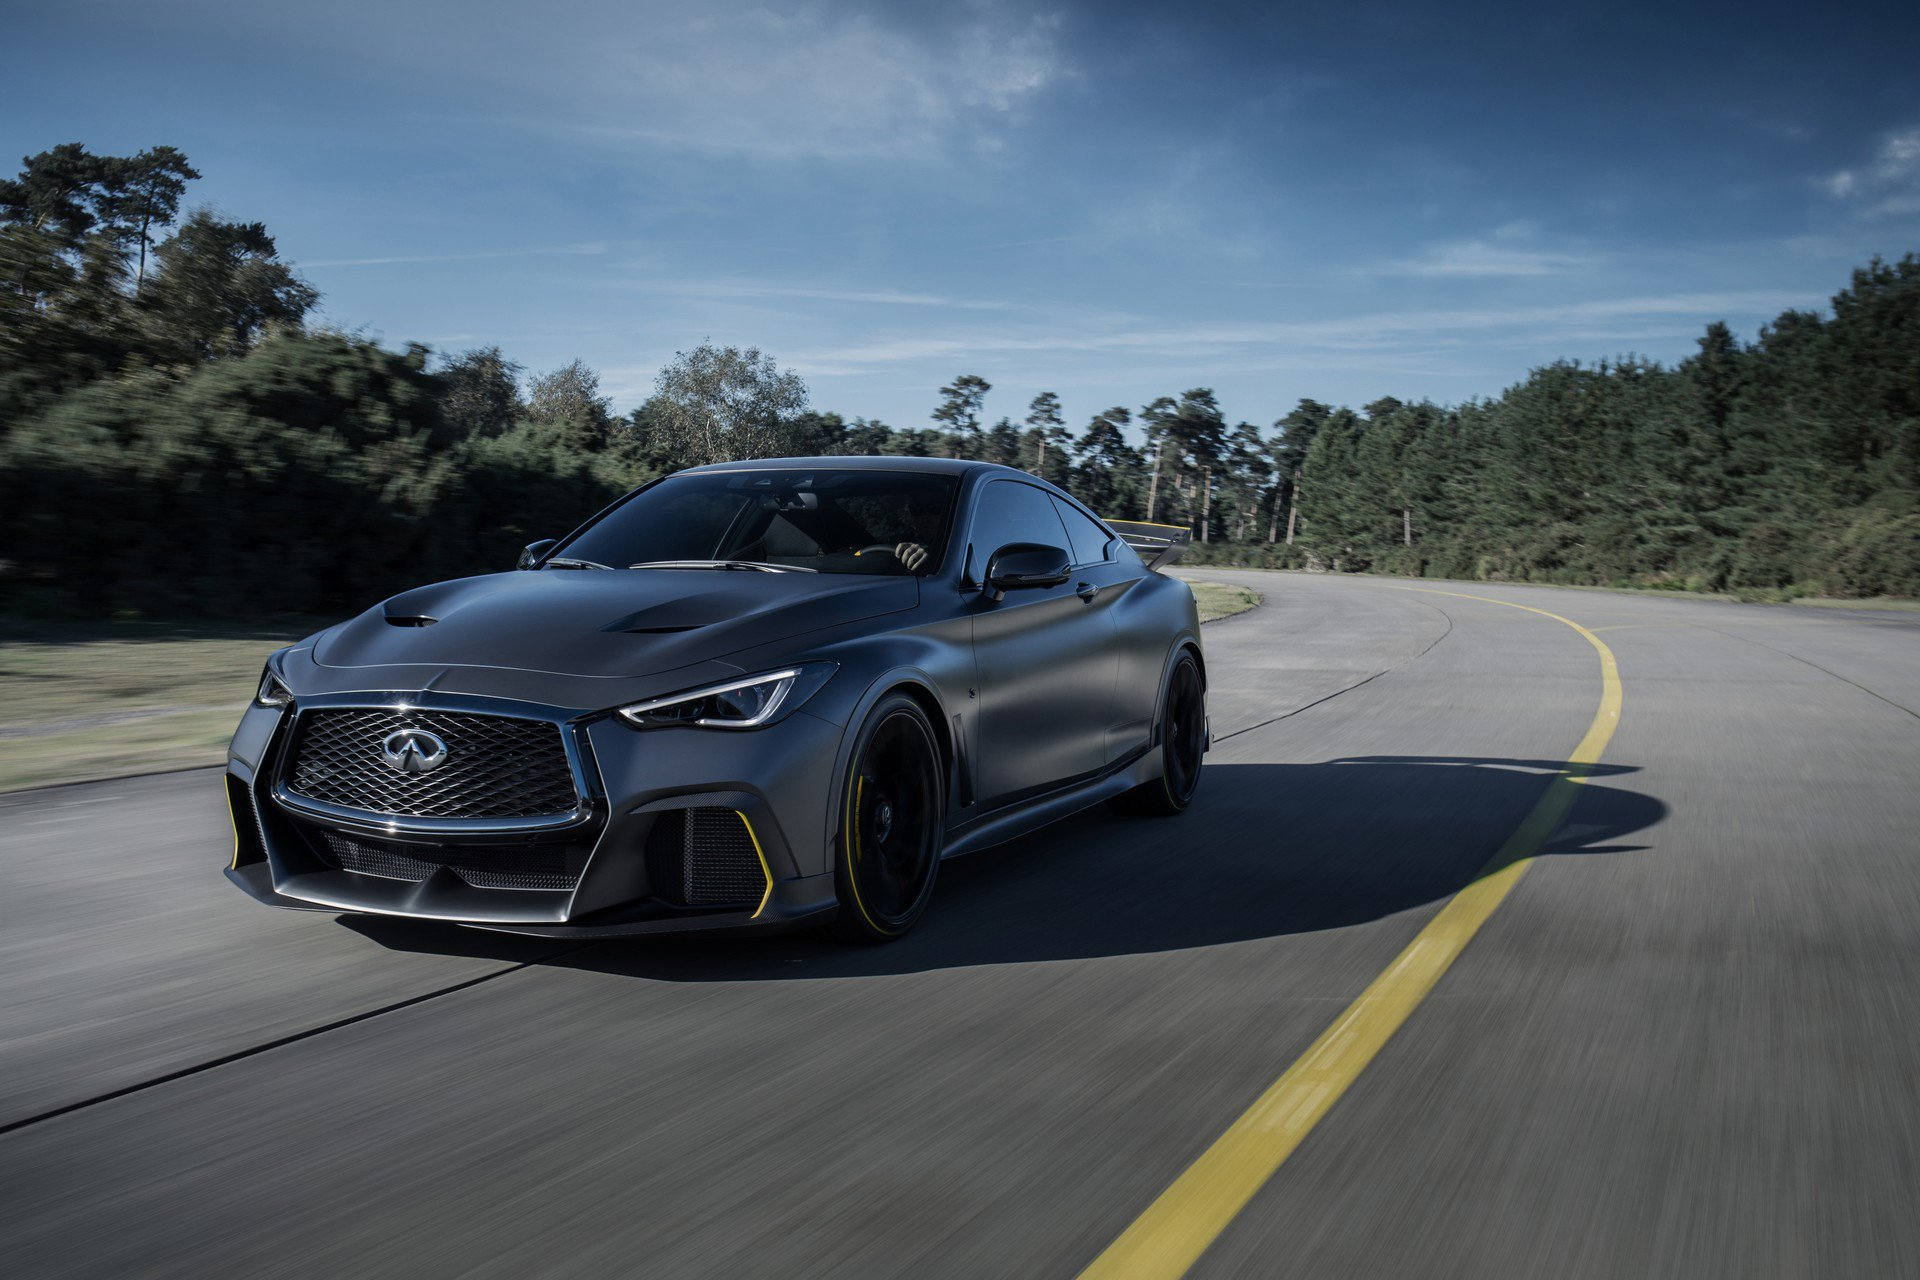 Infiniti Project Black S Prototype (30)